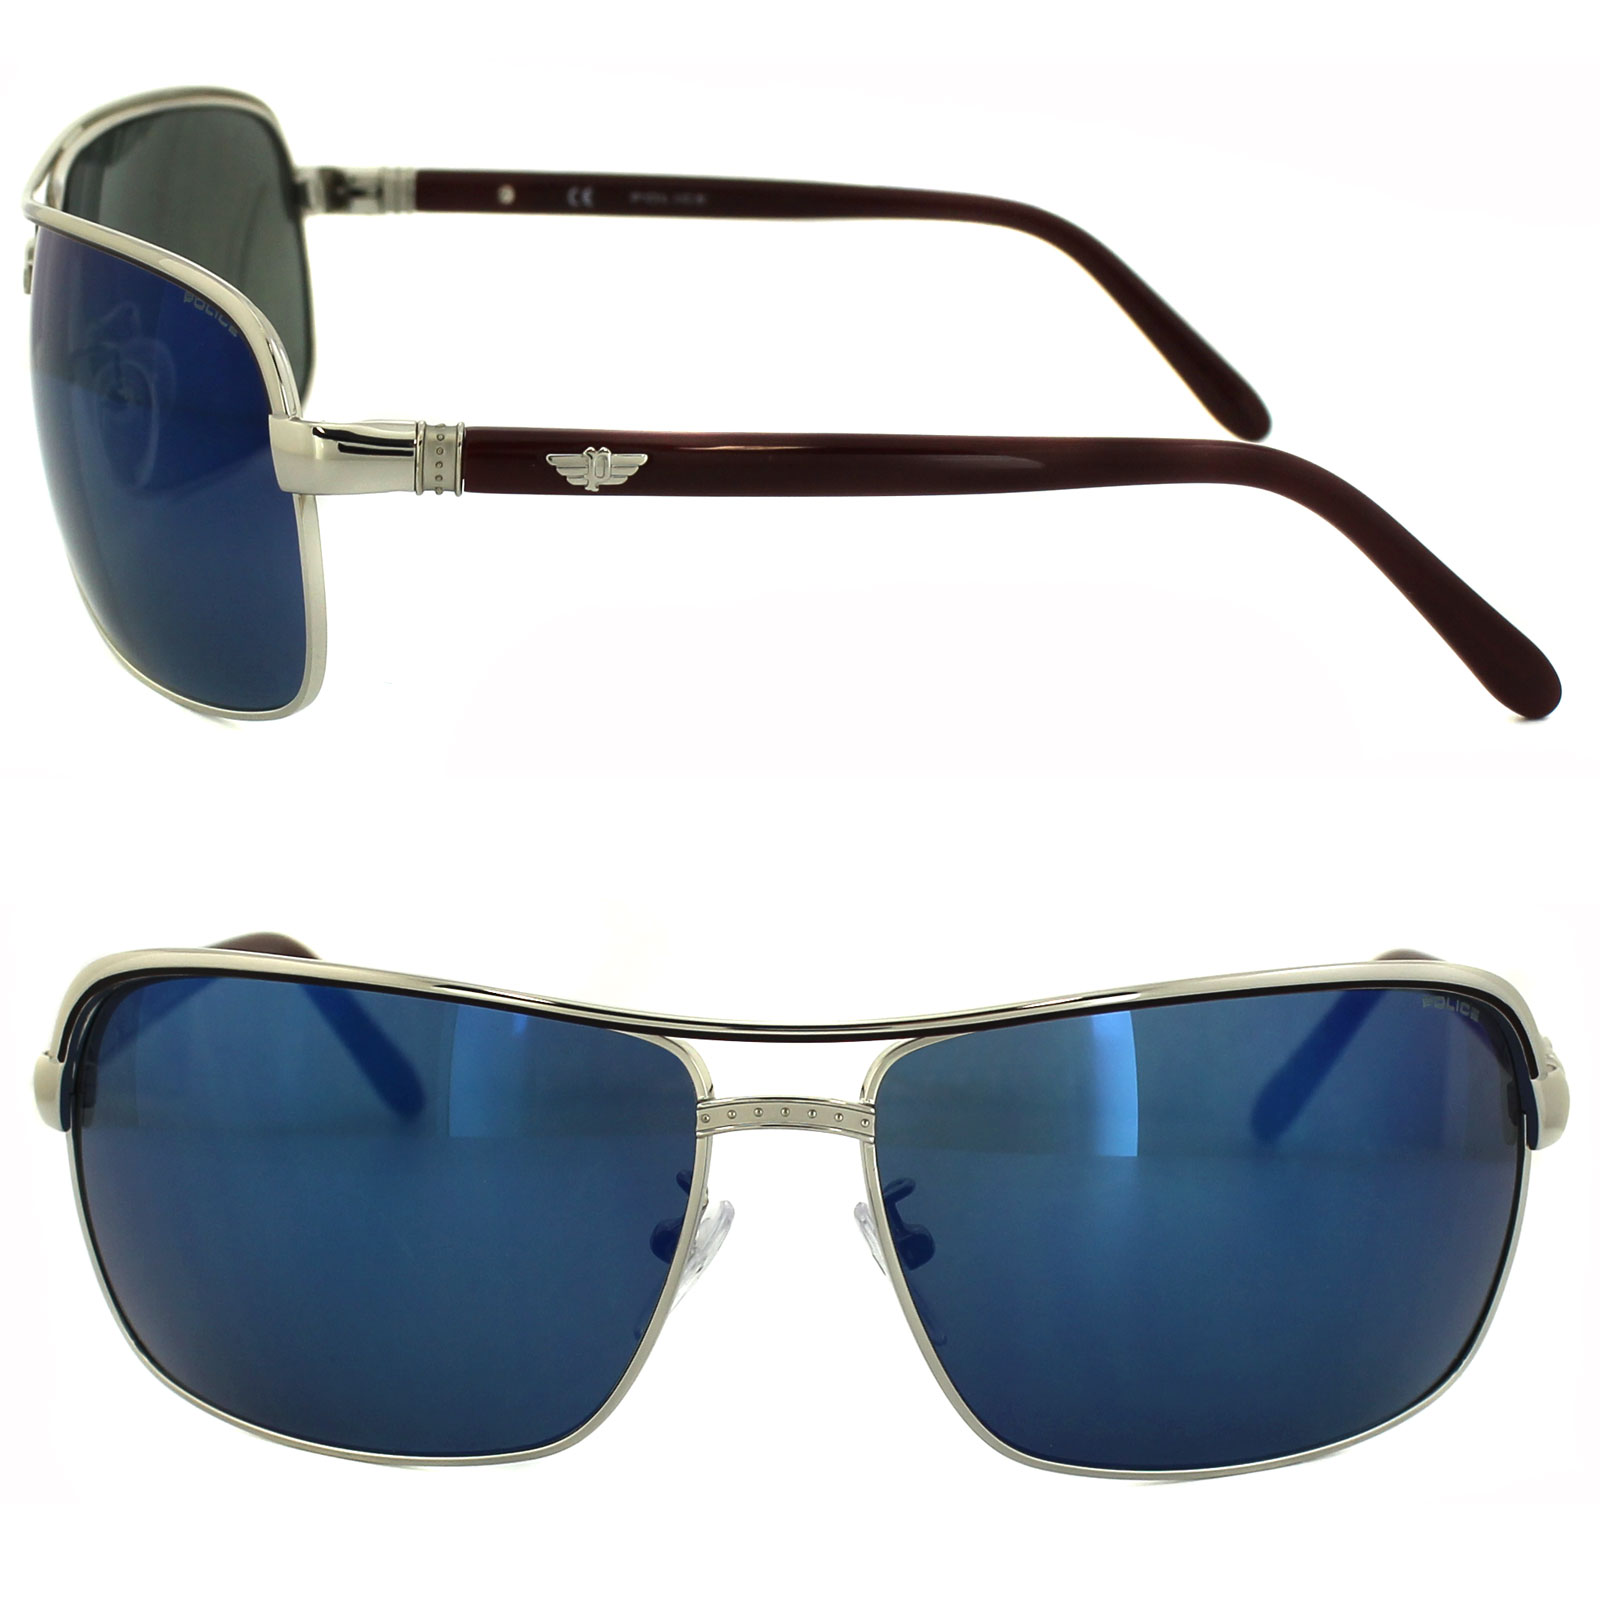 Cheap Police Sunglasses 8852 Discounted Sunglasses